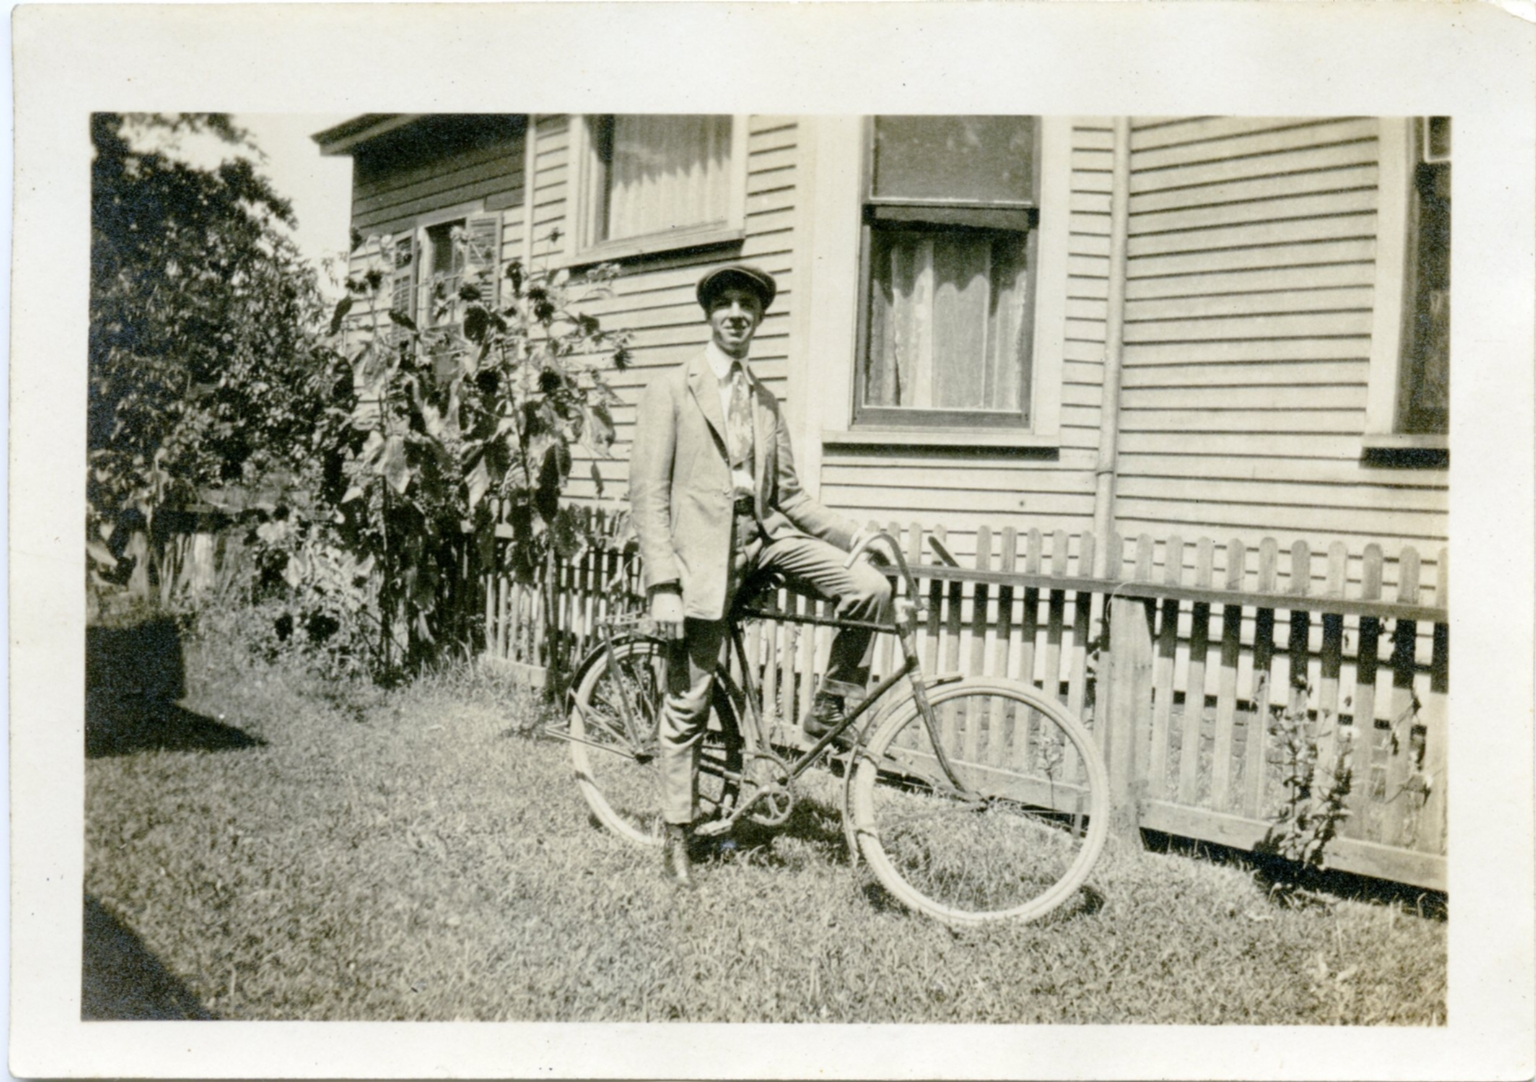 Bicycle by the House